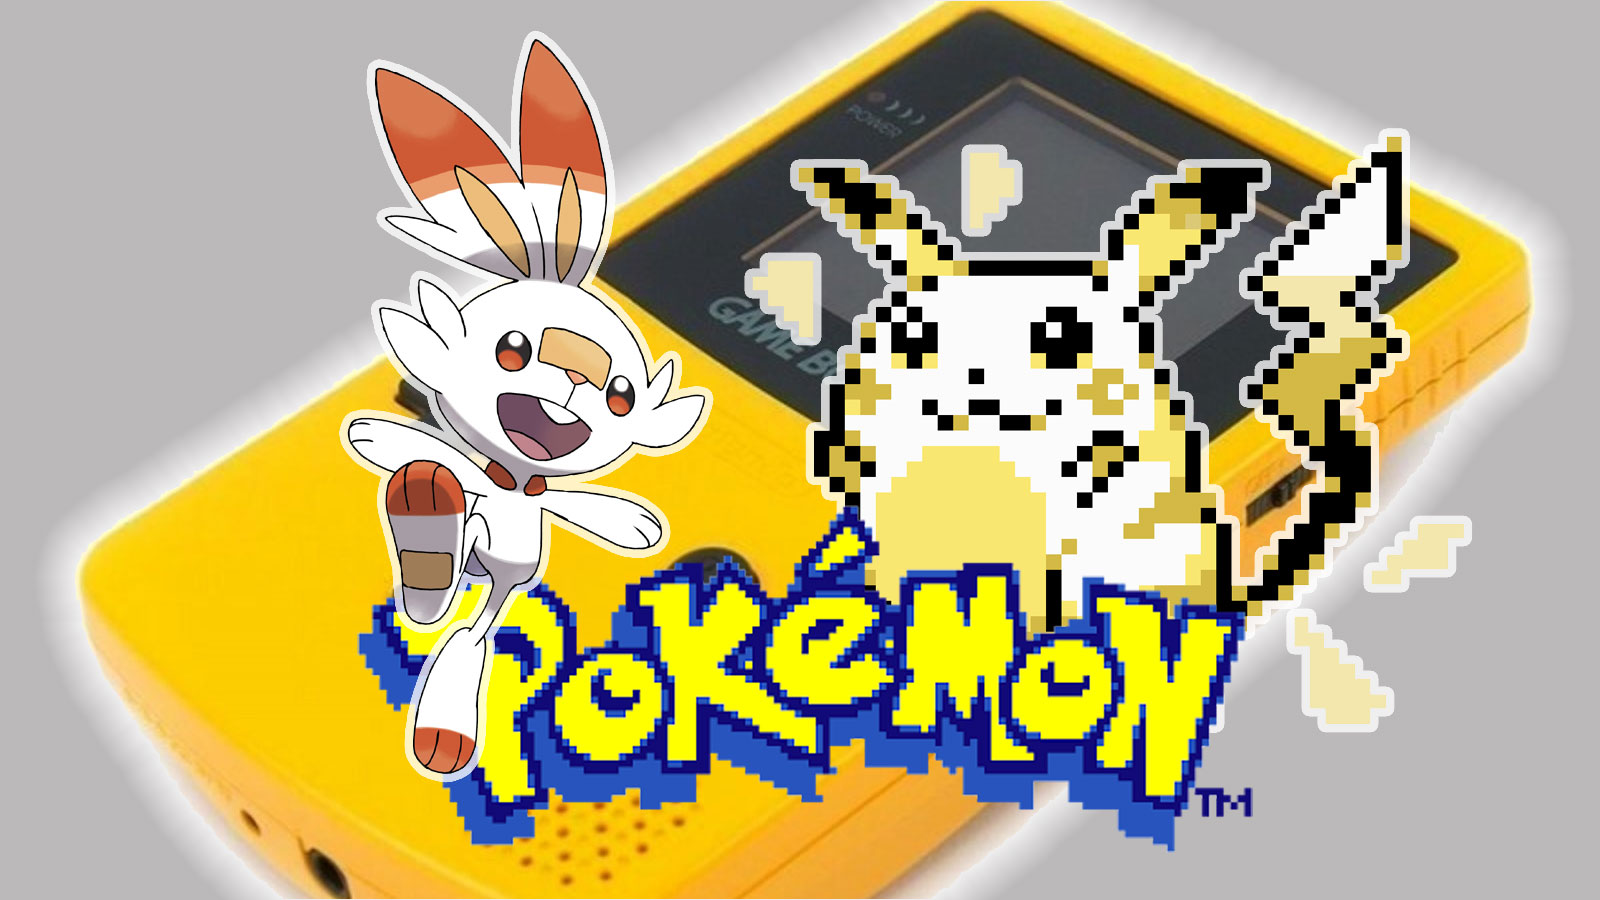 Screenshot of Scorbunny and Pixel Pikachu in front of a Nintendo Gameboy.